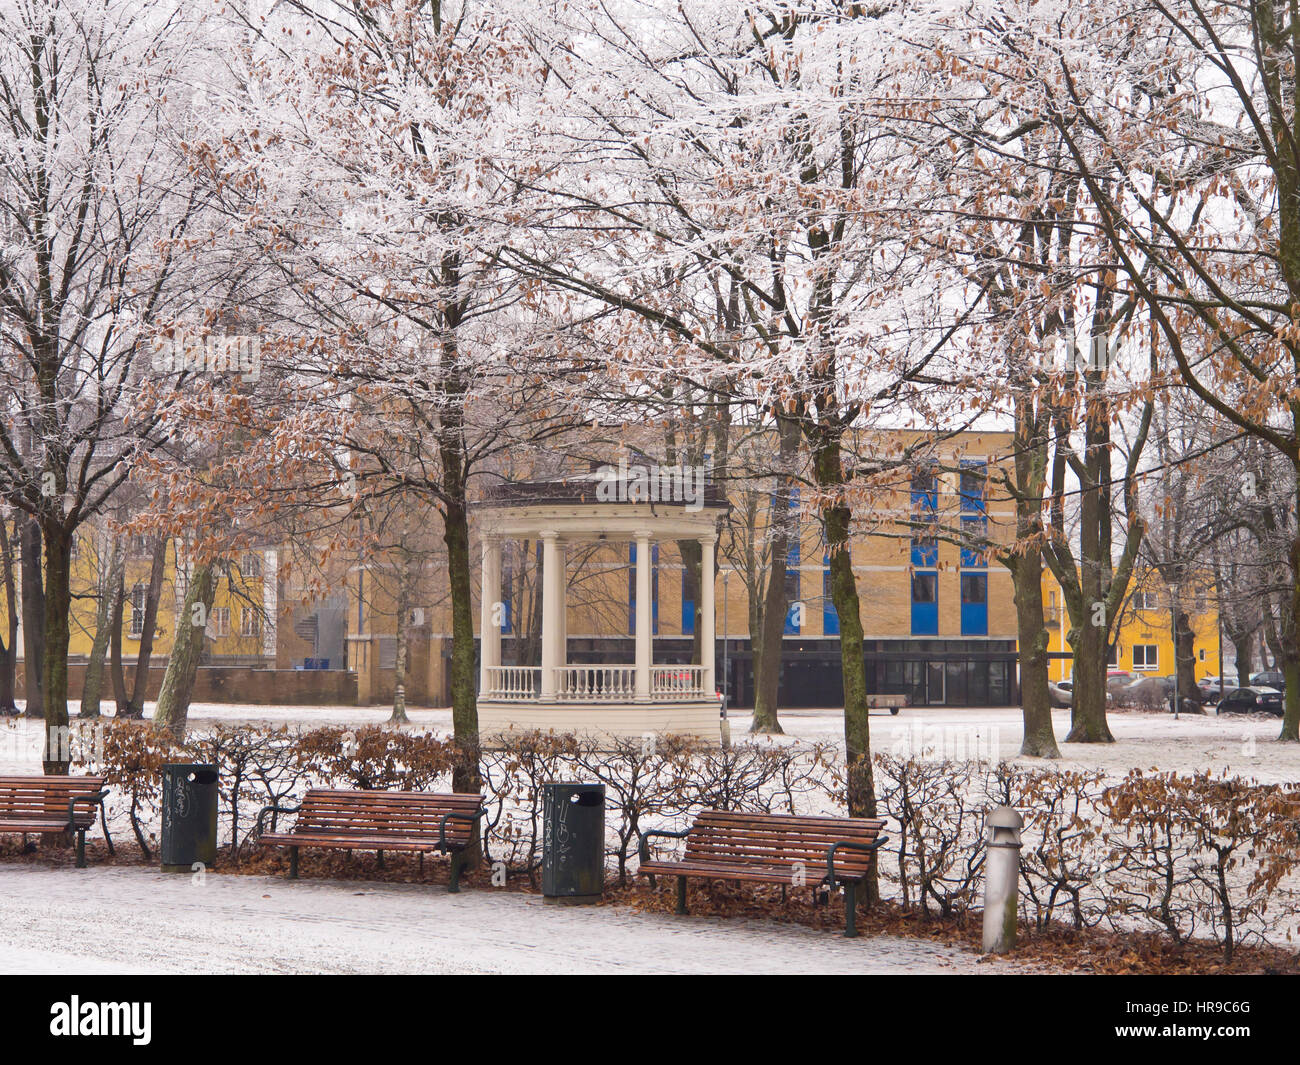 Drammen town park with its circular music pavilion on an idyllic snowy winter day, in Buskerud Norway west of Oslo Stock Photo